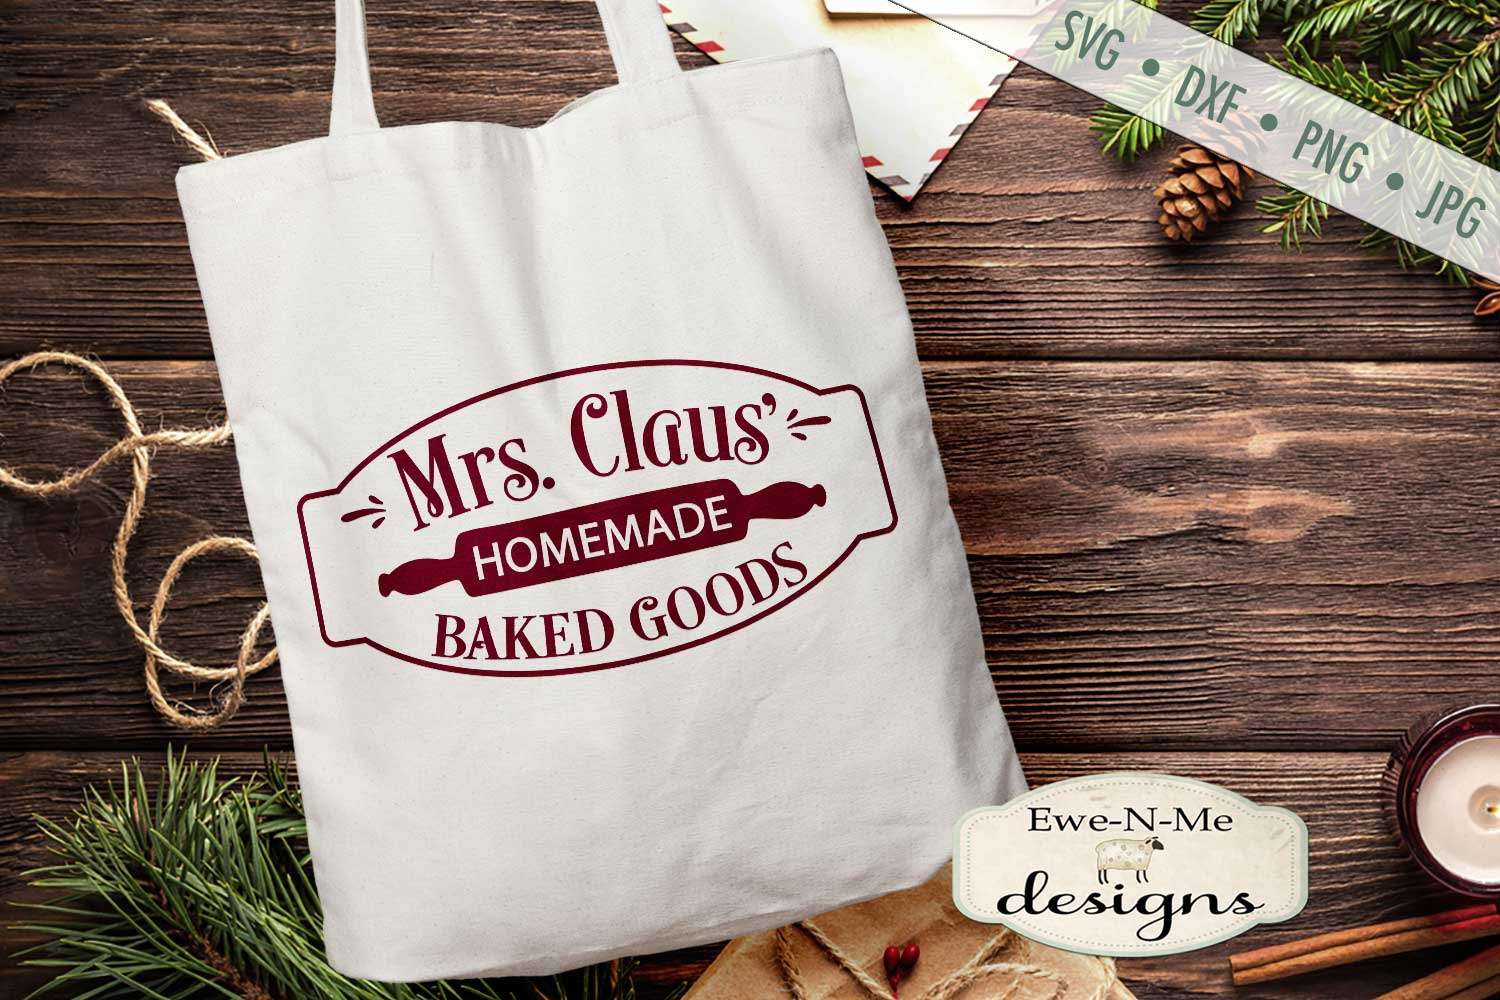 Mrs Claus' Baked Goods - Christmas - Rolling Pin - SVG DXF example image 1